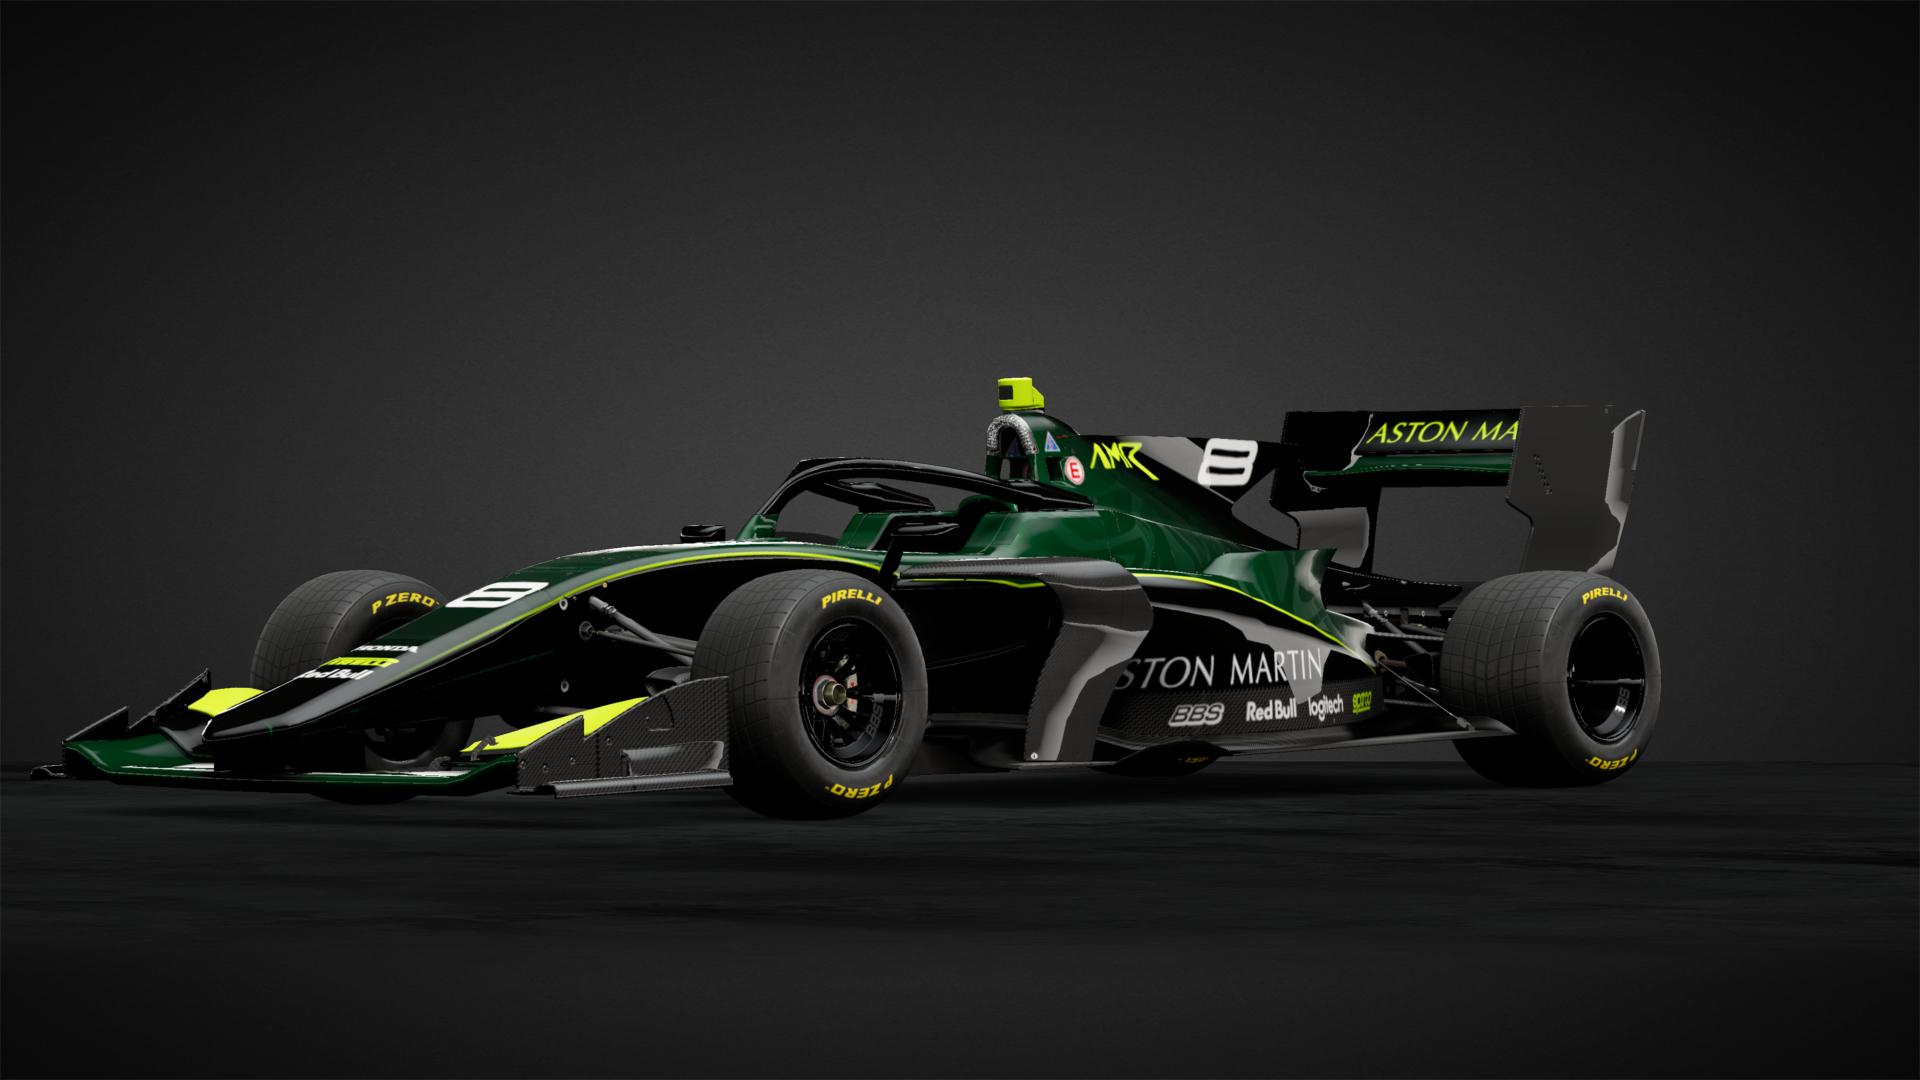 Aston Martin F1 Concept Car Livery By Isaacmit02 Community Gran Turismo Sport